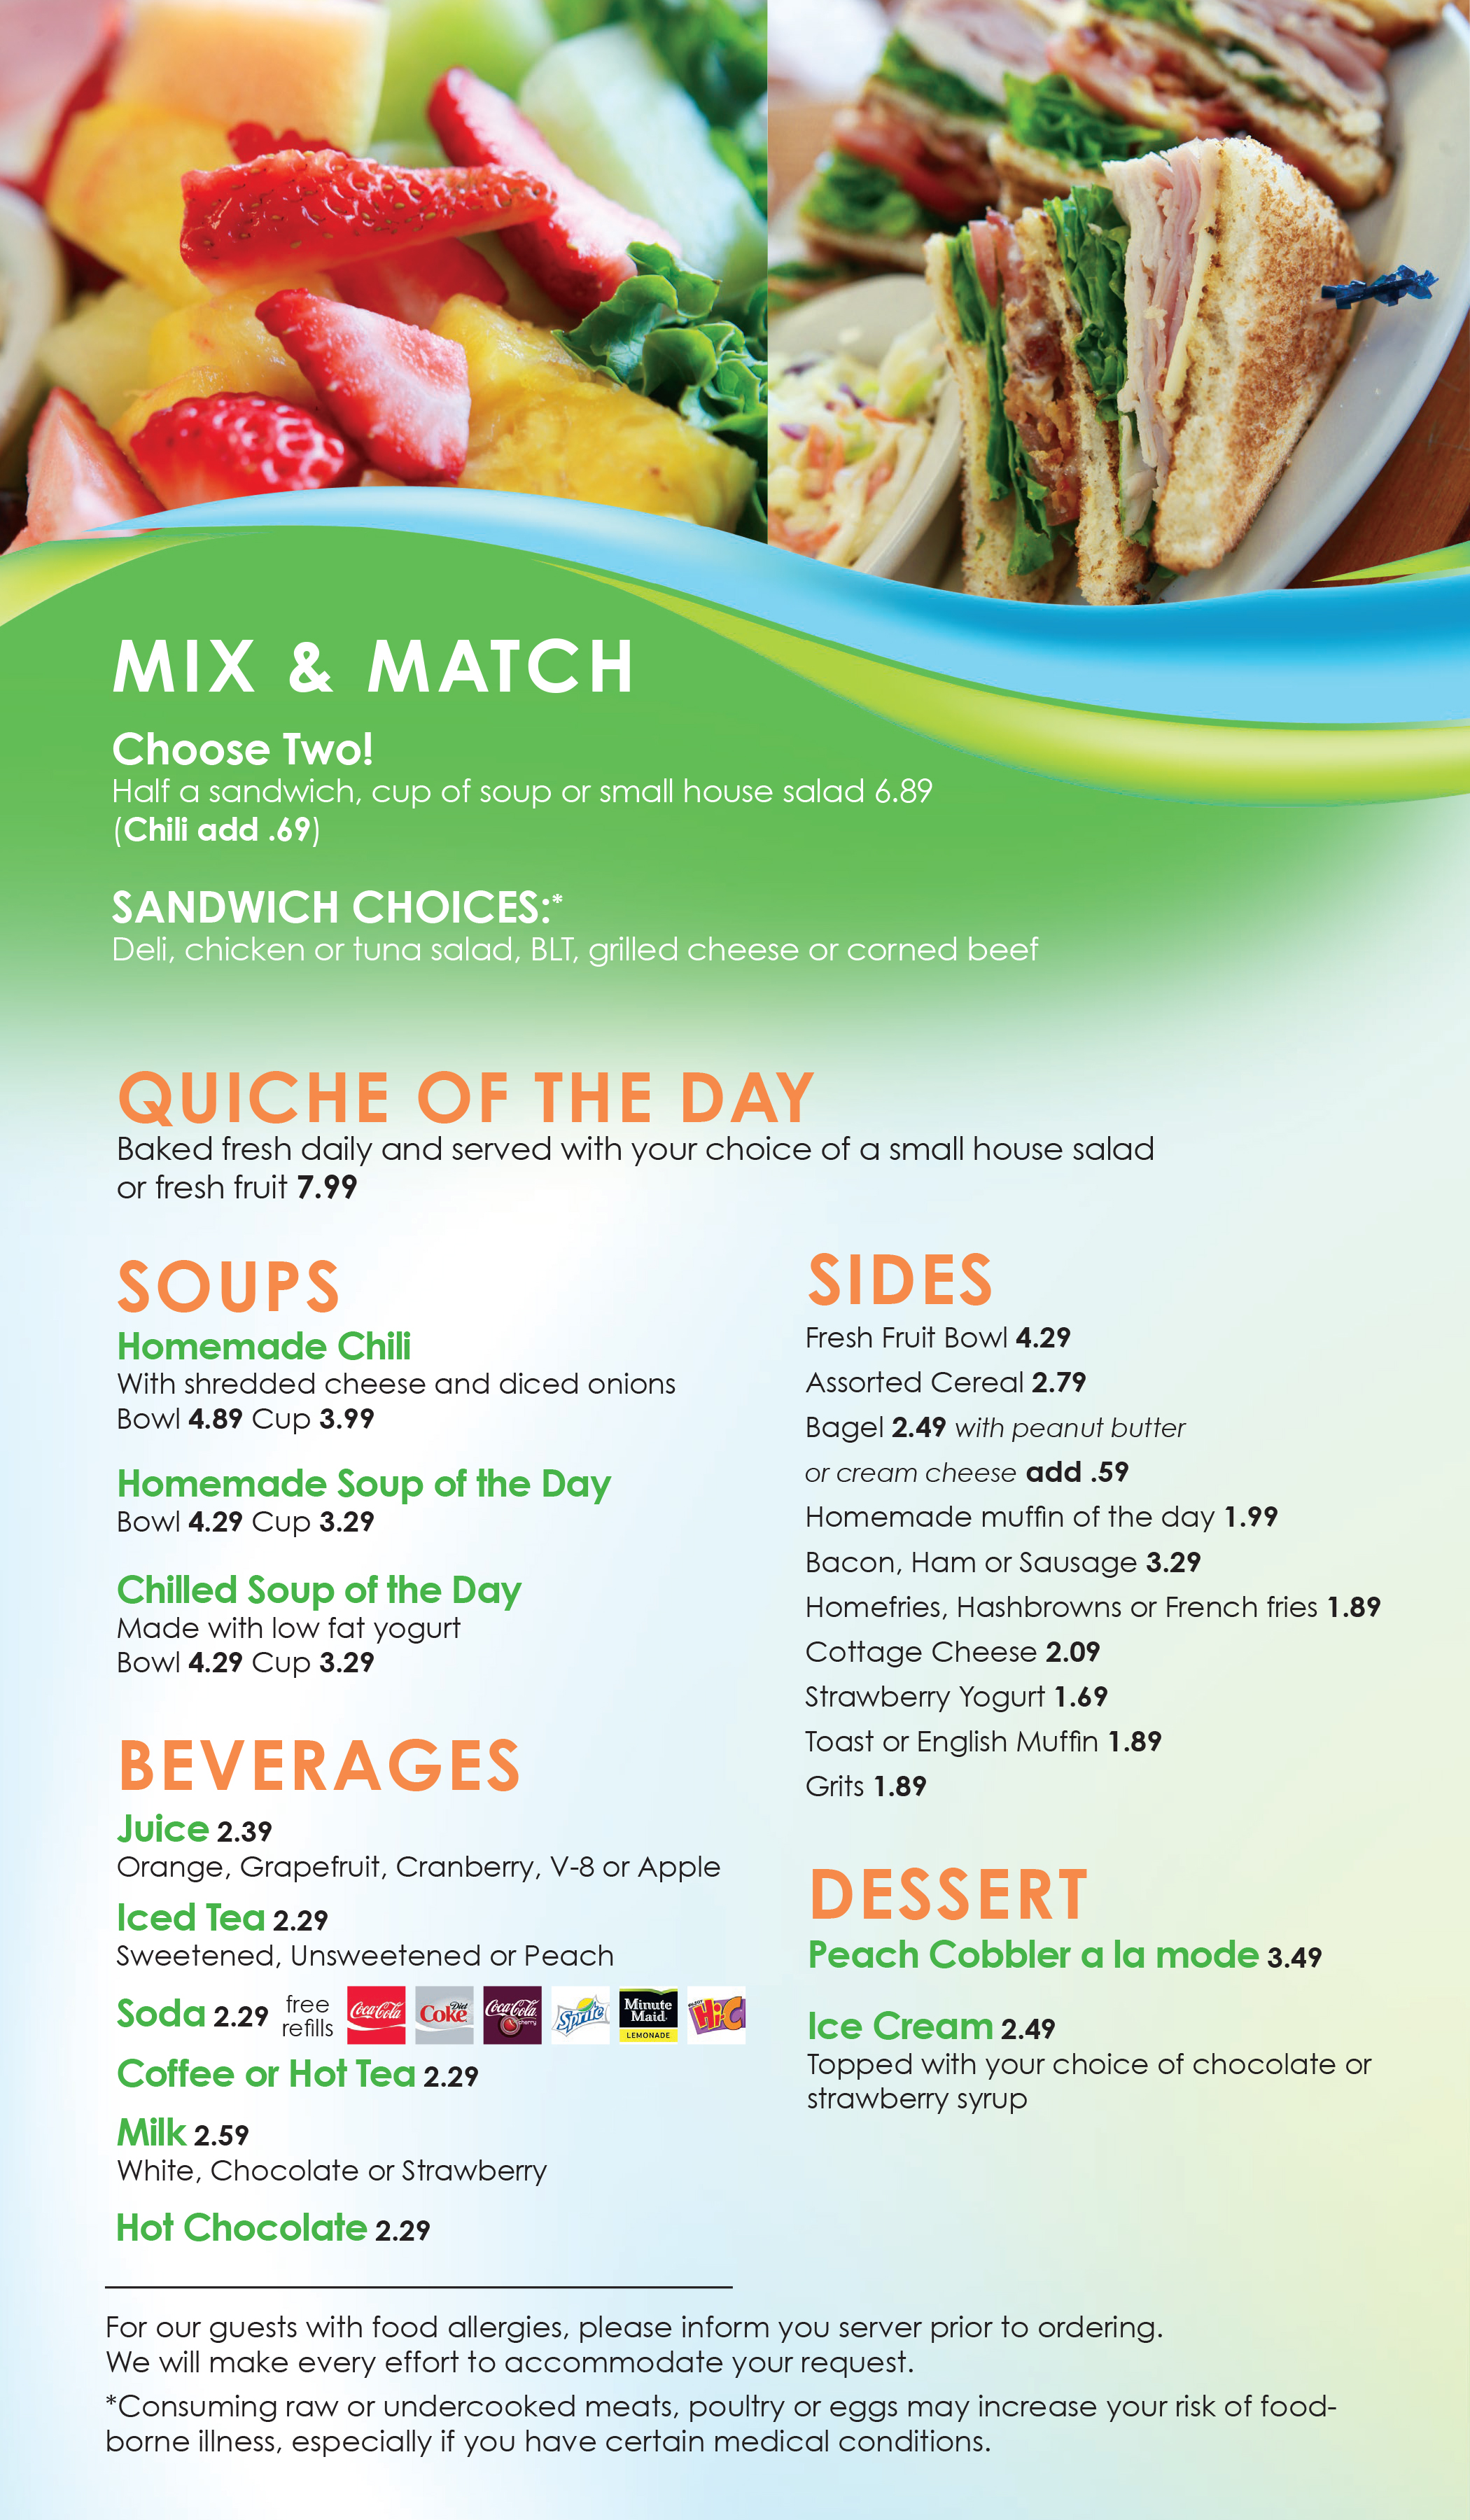 Mix and Match Menu